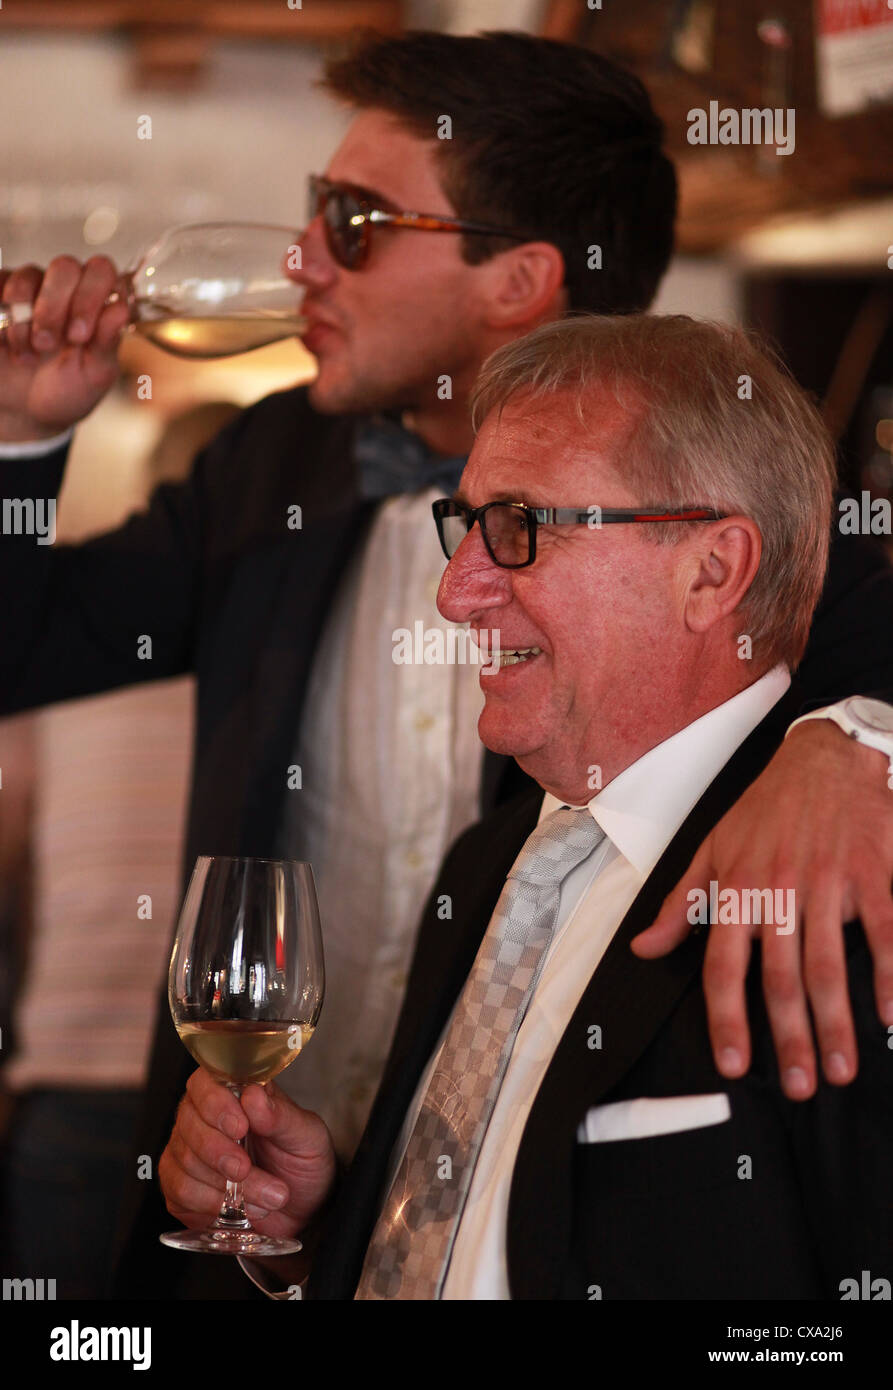 During a celebration in a wine bar two family members are drinking white wine. Spilimbergo, northern Italy, Europe. - Stock Image